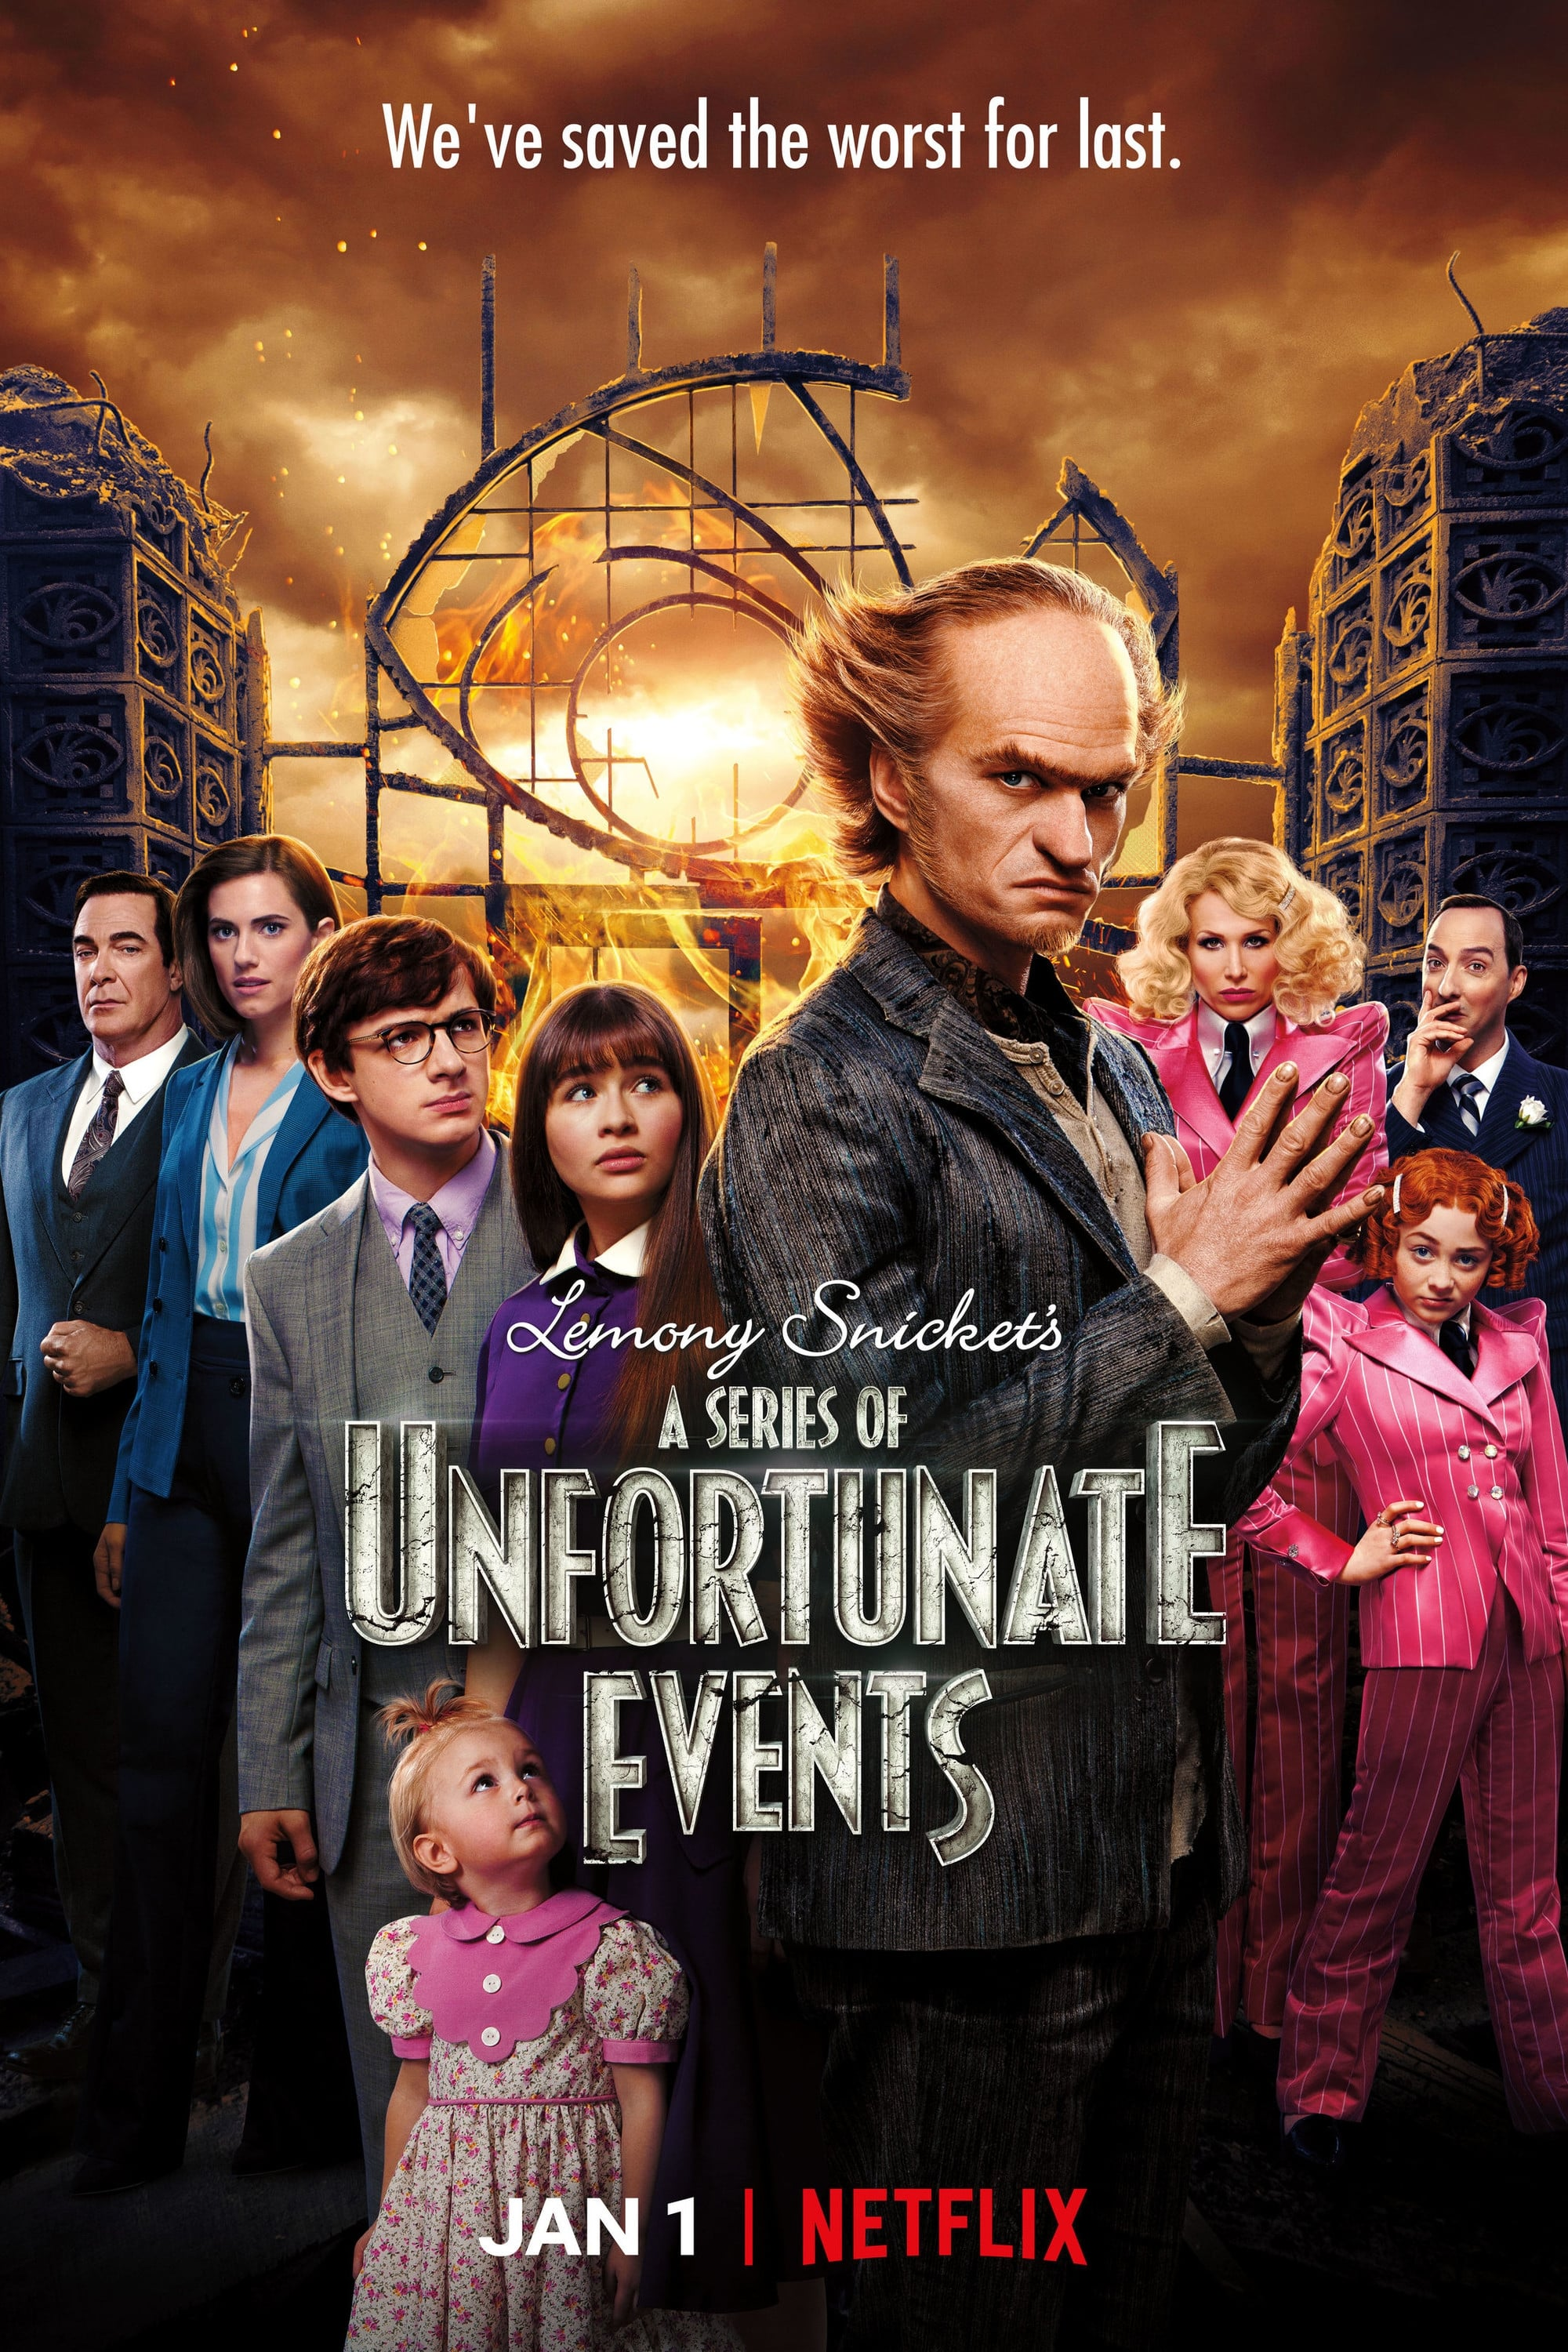 A Series of Unfortunate Events Season 3